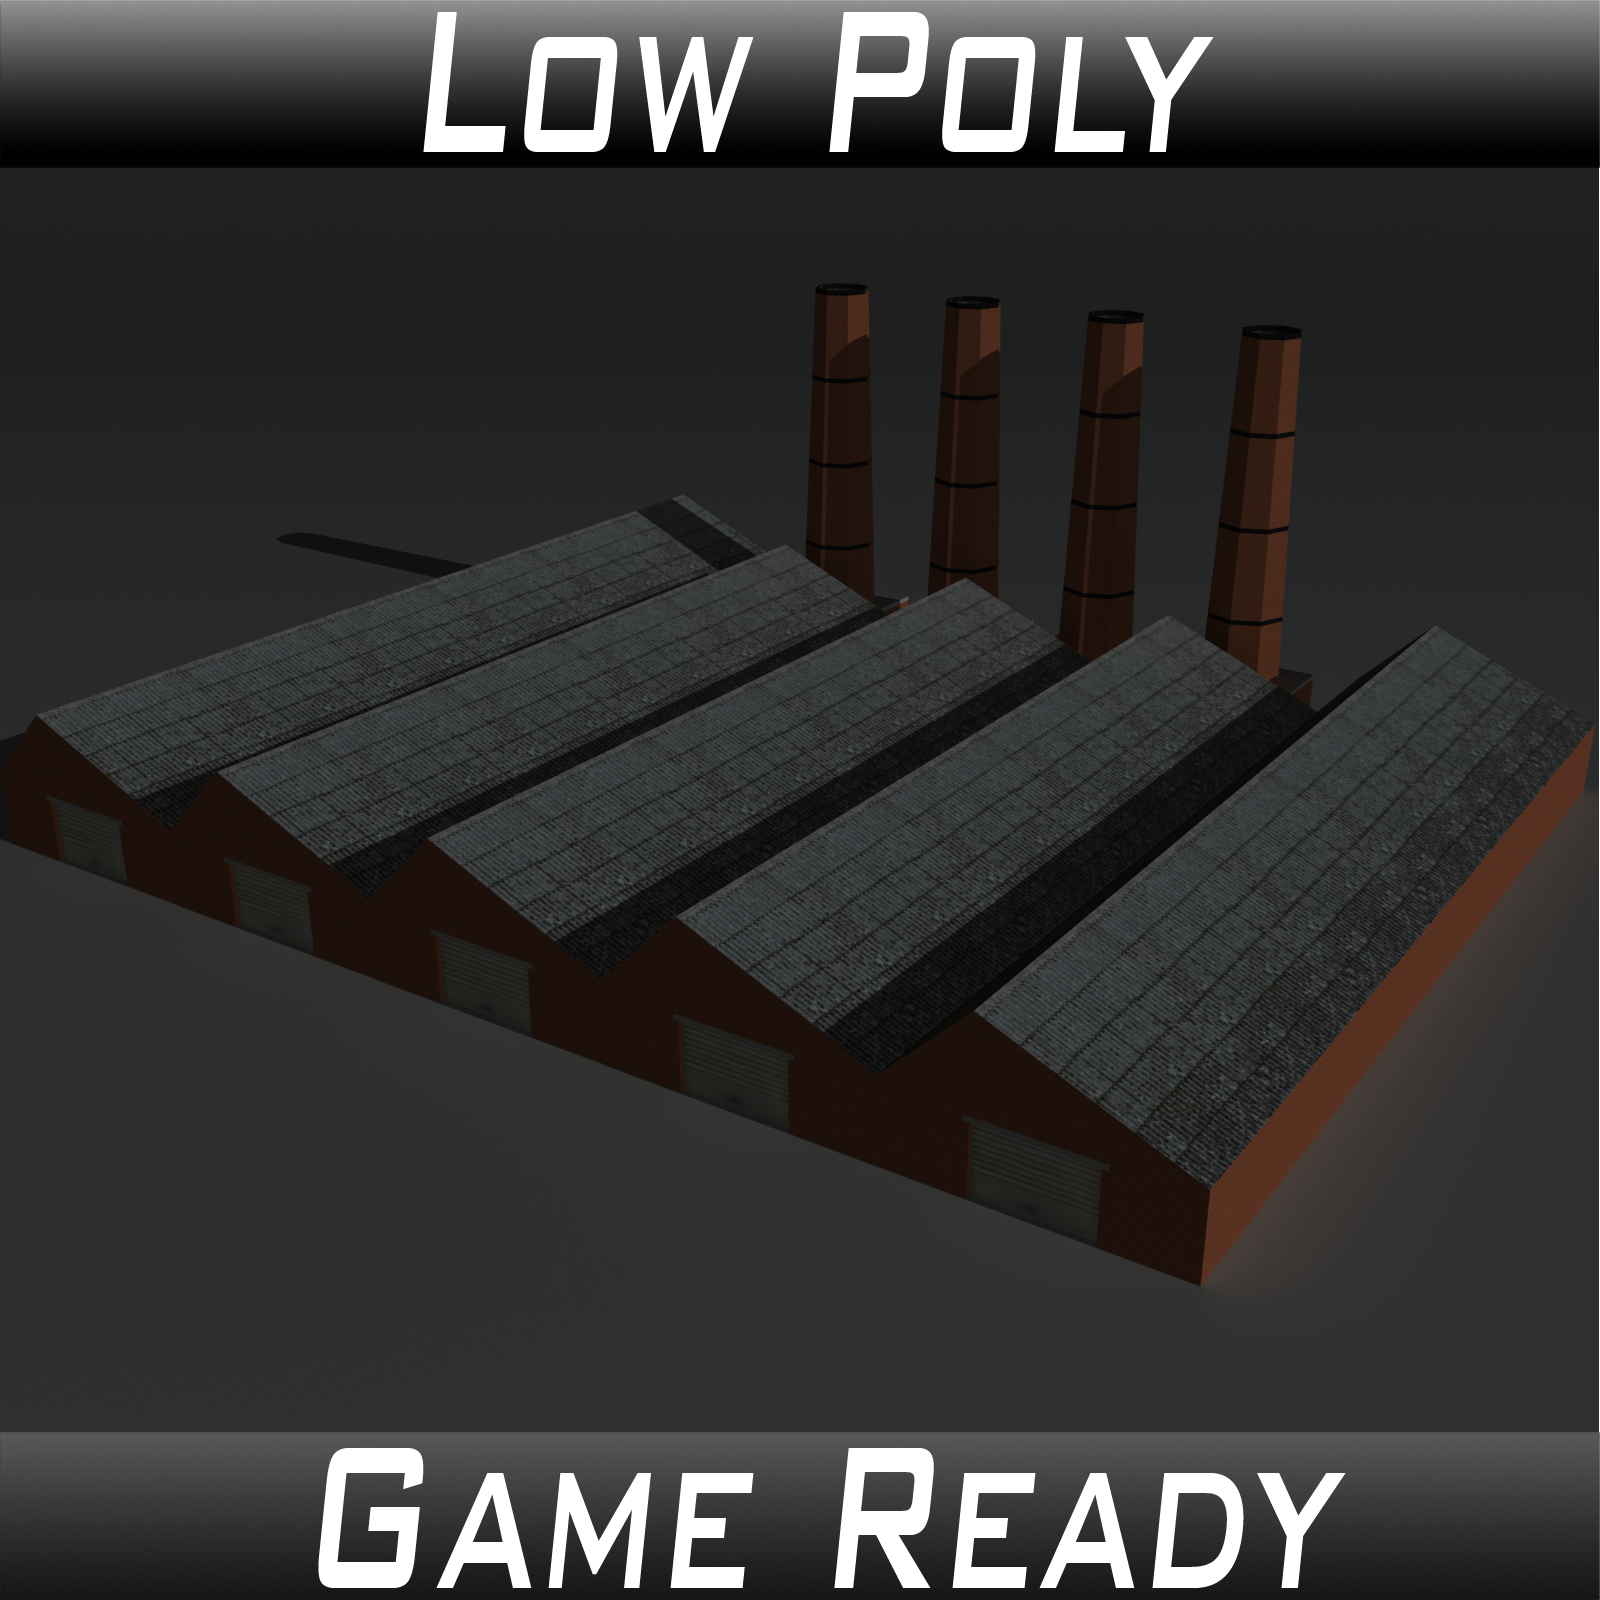 Low Poly Factory Building 14 - Extended Licence by 3dlands